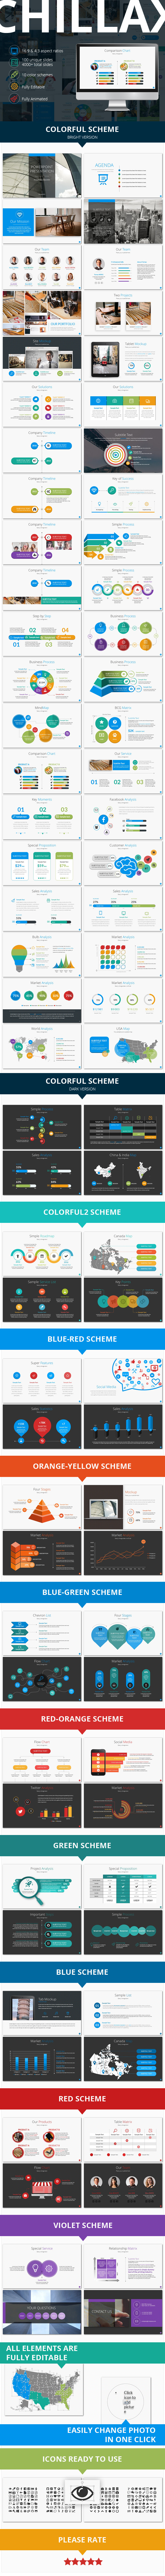 GraphicRiver Chillax Multipurpose Presentation Template 11453322